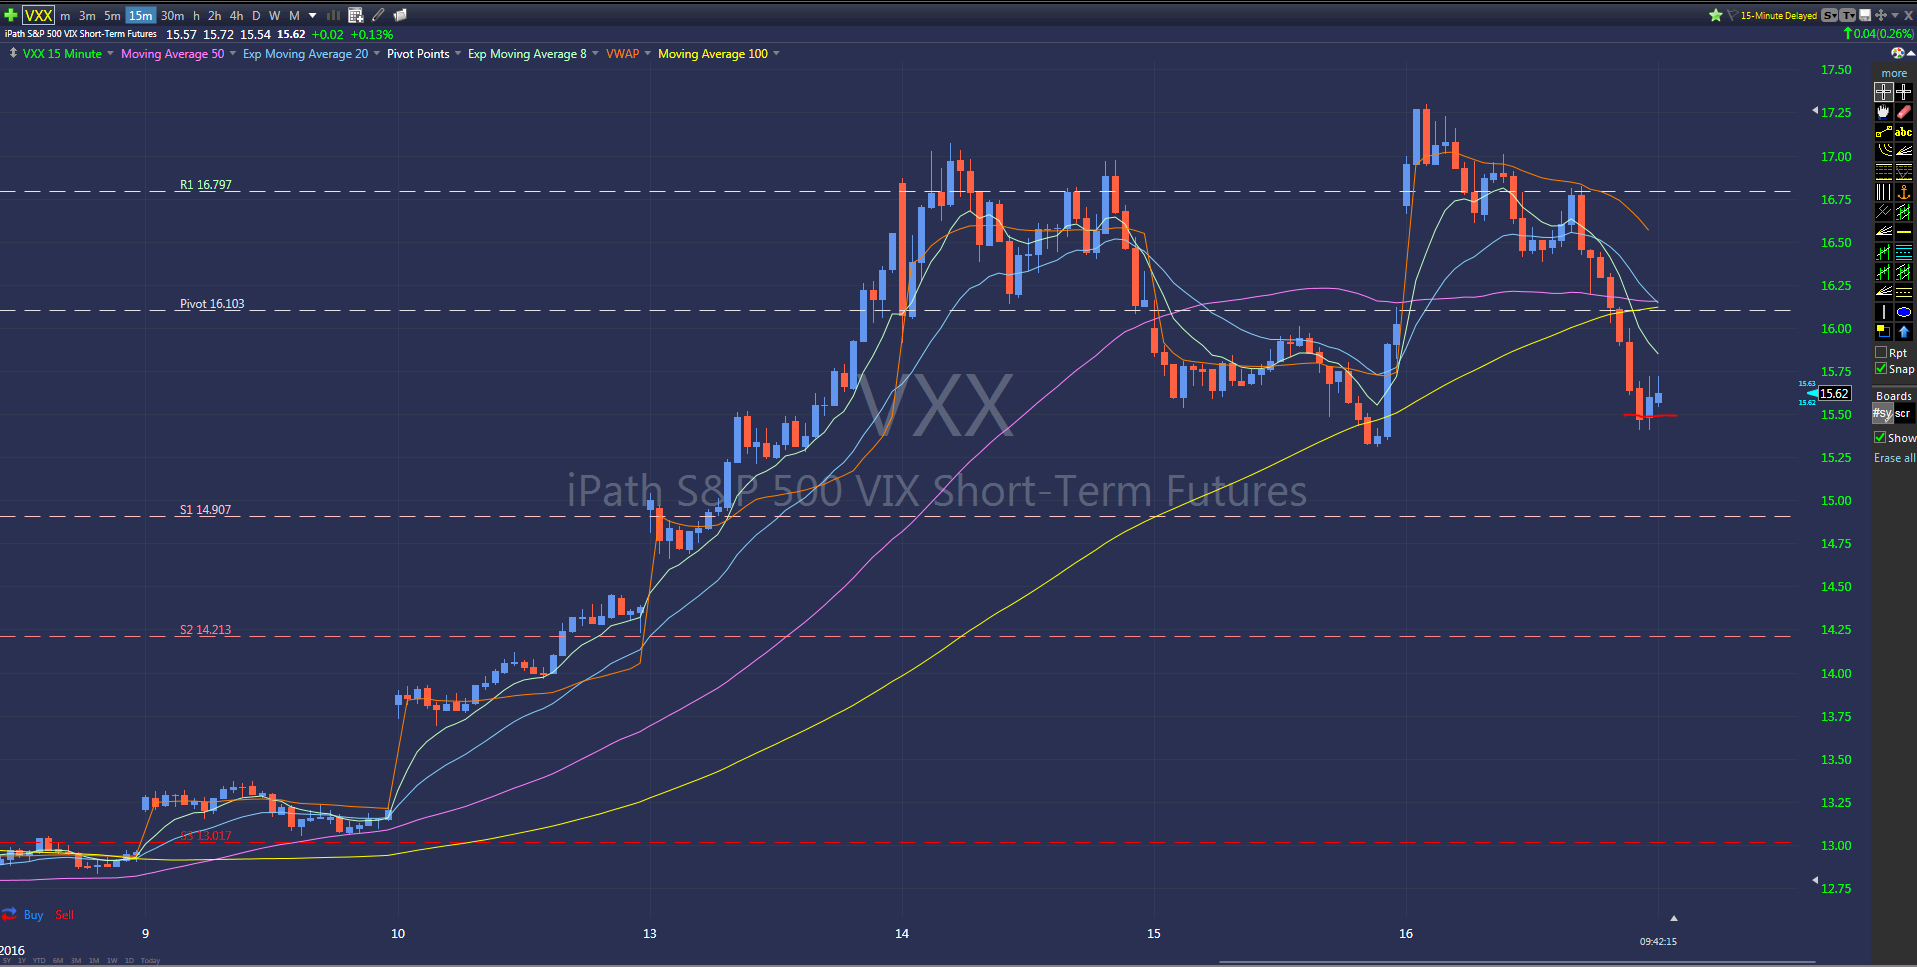 Covered VXX short at 15.60 for 1.20 gain